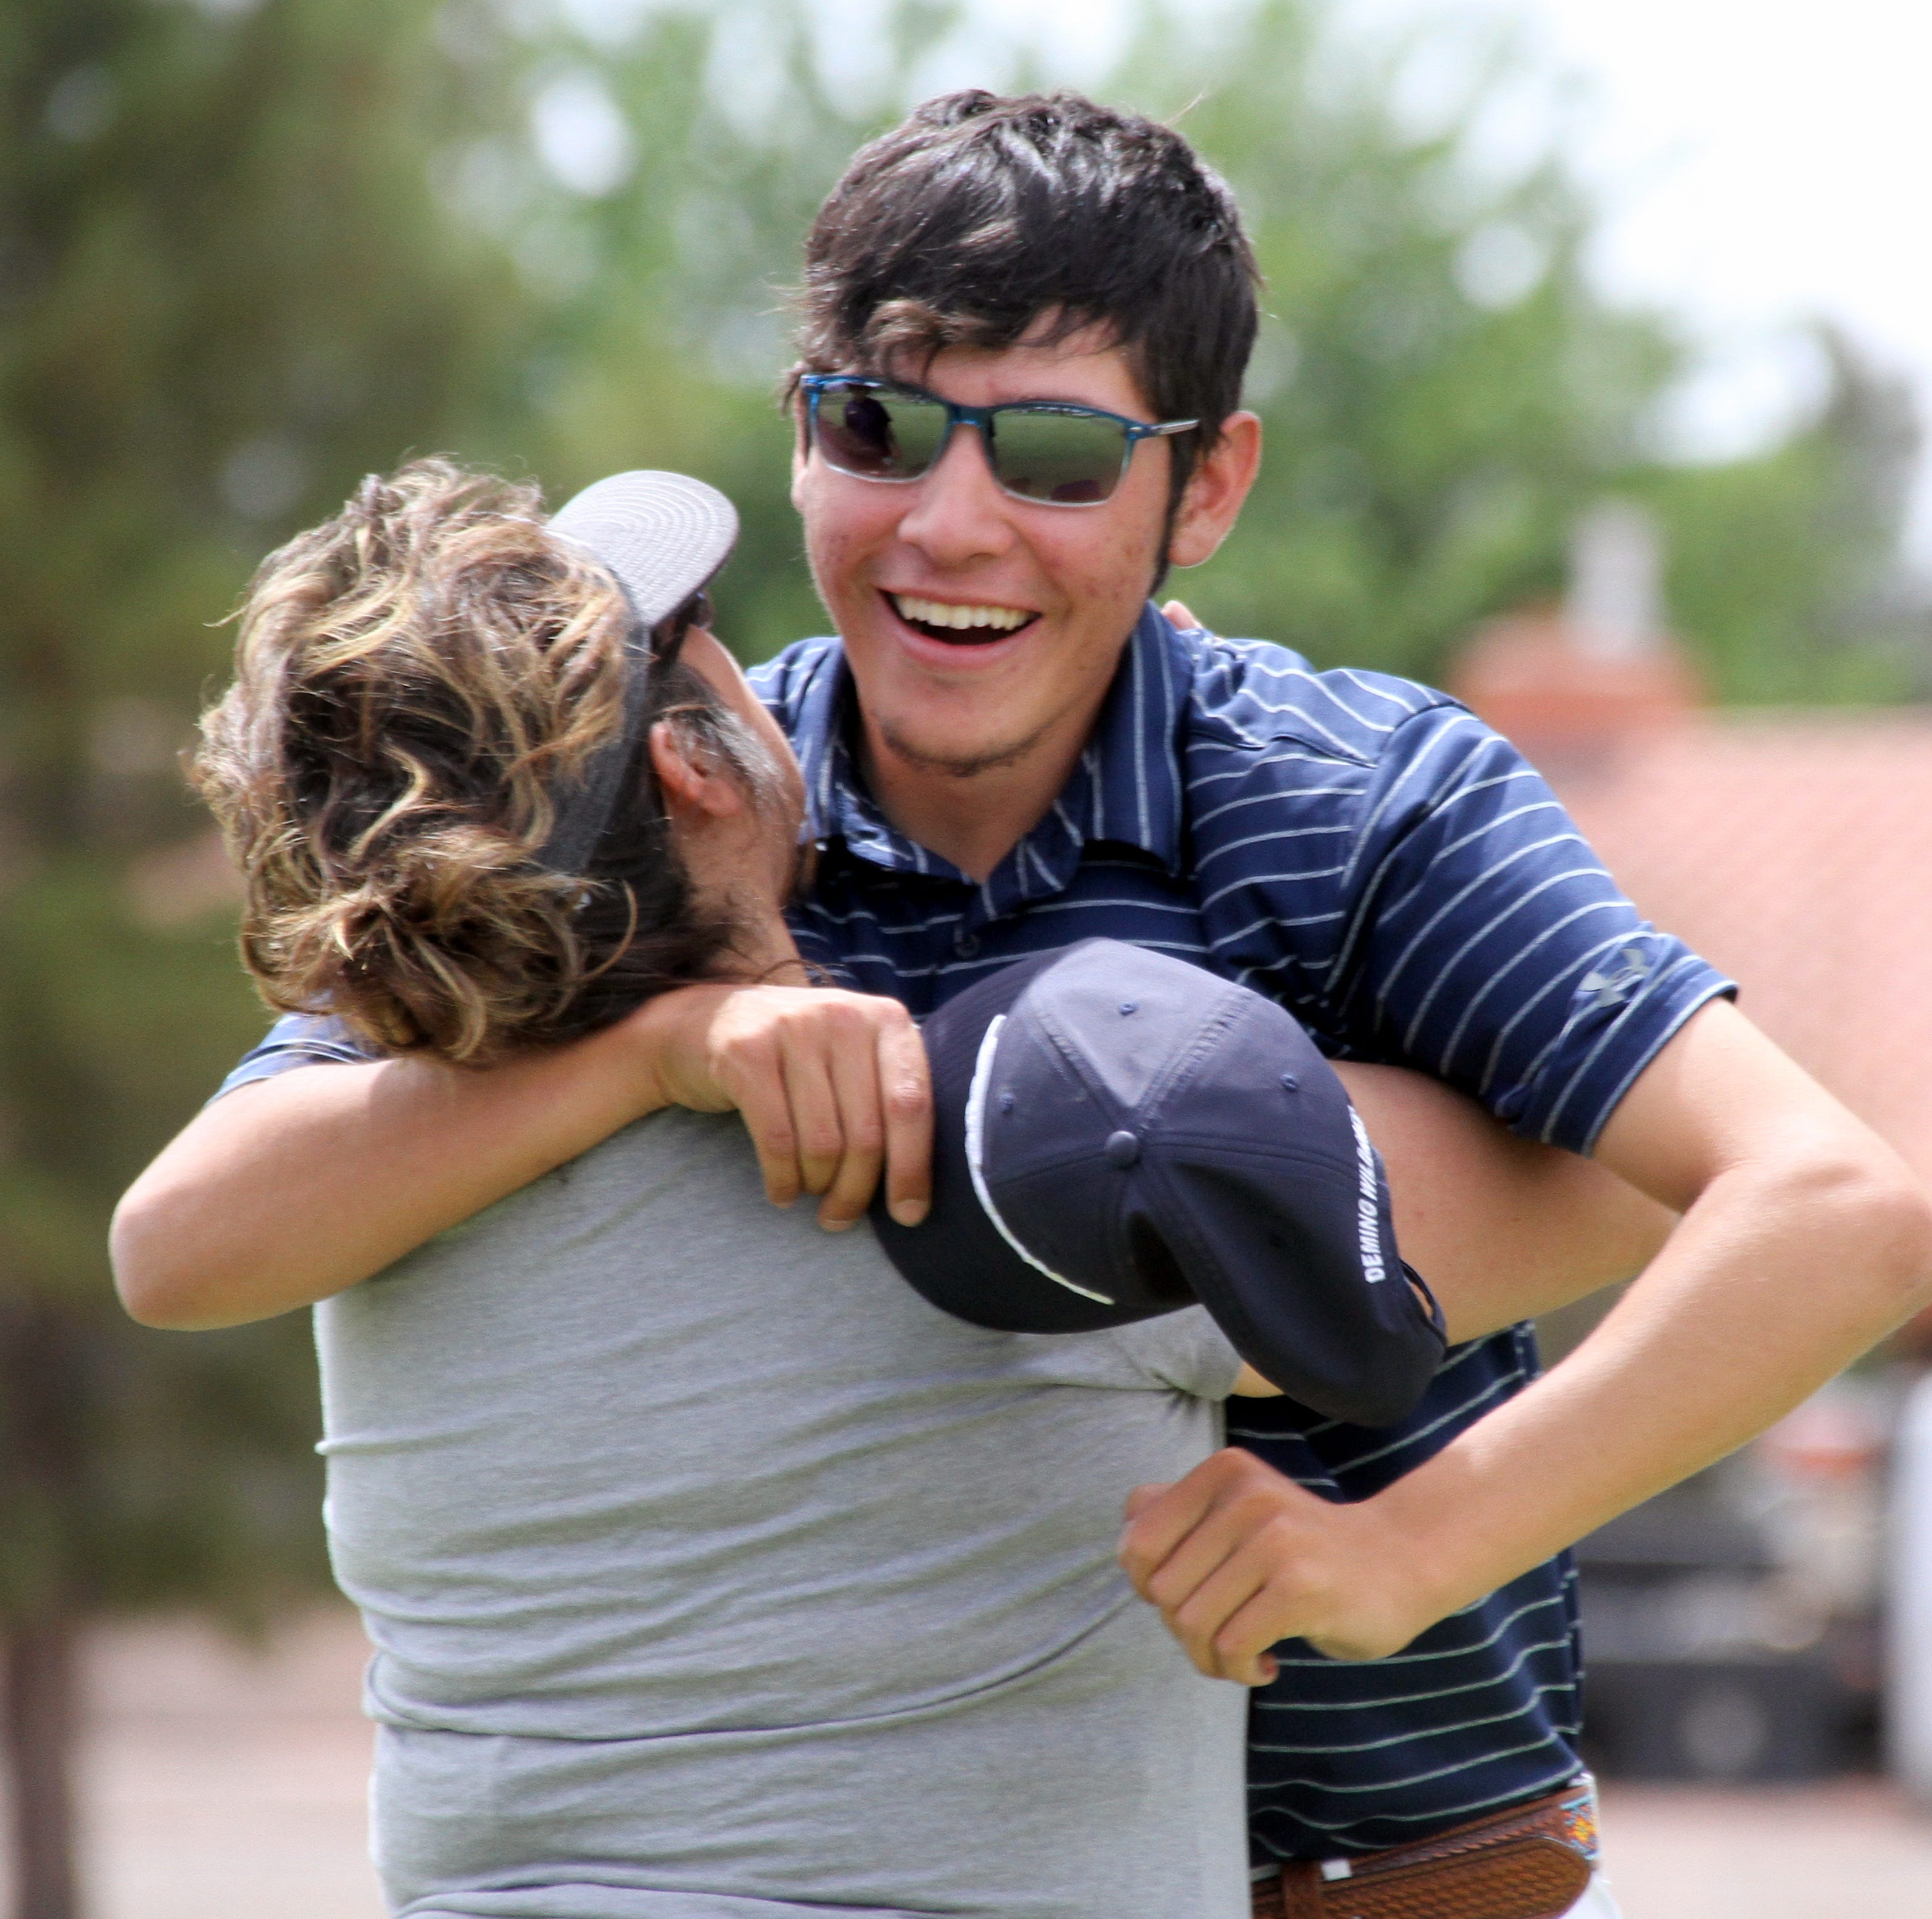 Deming High Wildcat golfers claim District 3-5A team championship at Rio Mimbres